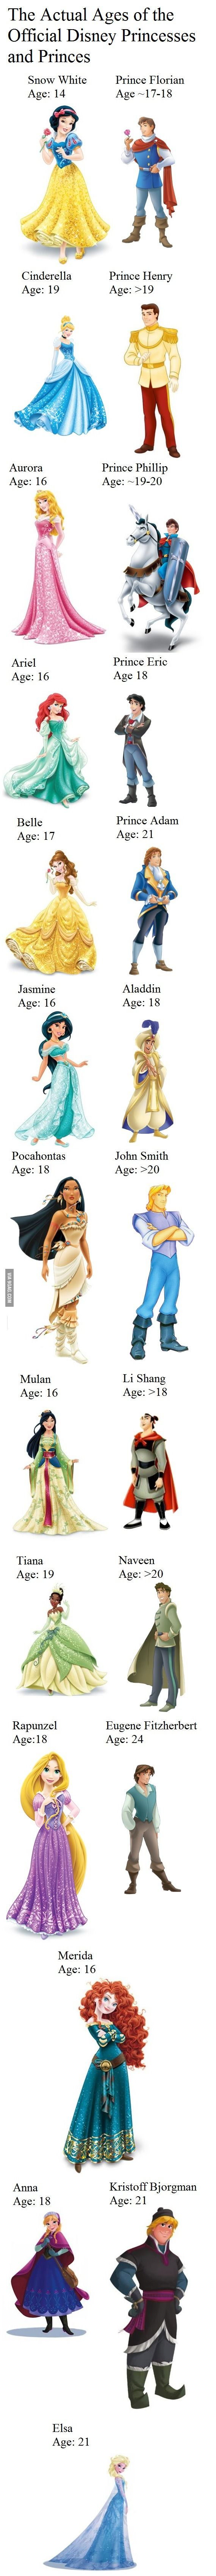 The Actual Ages of the Official Disney Princesses and Princes